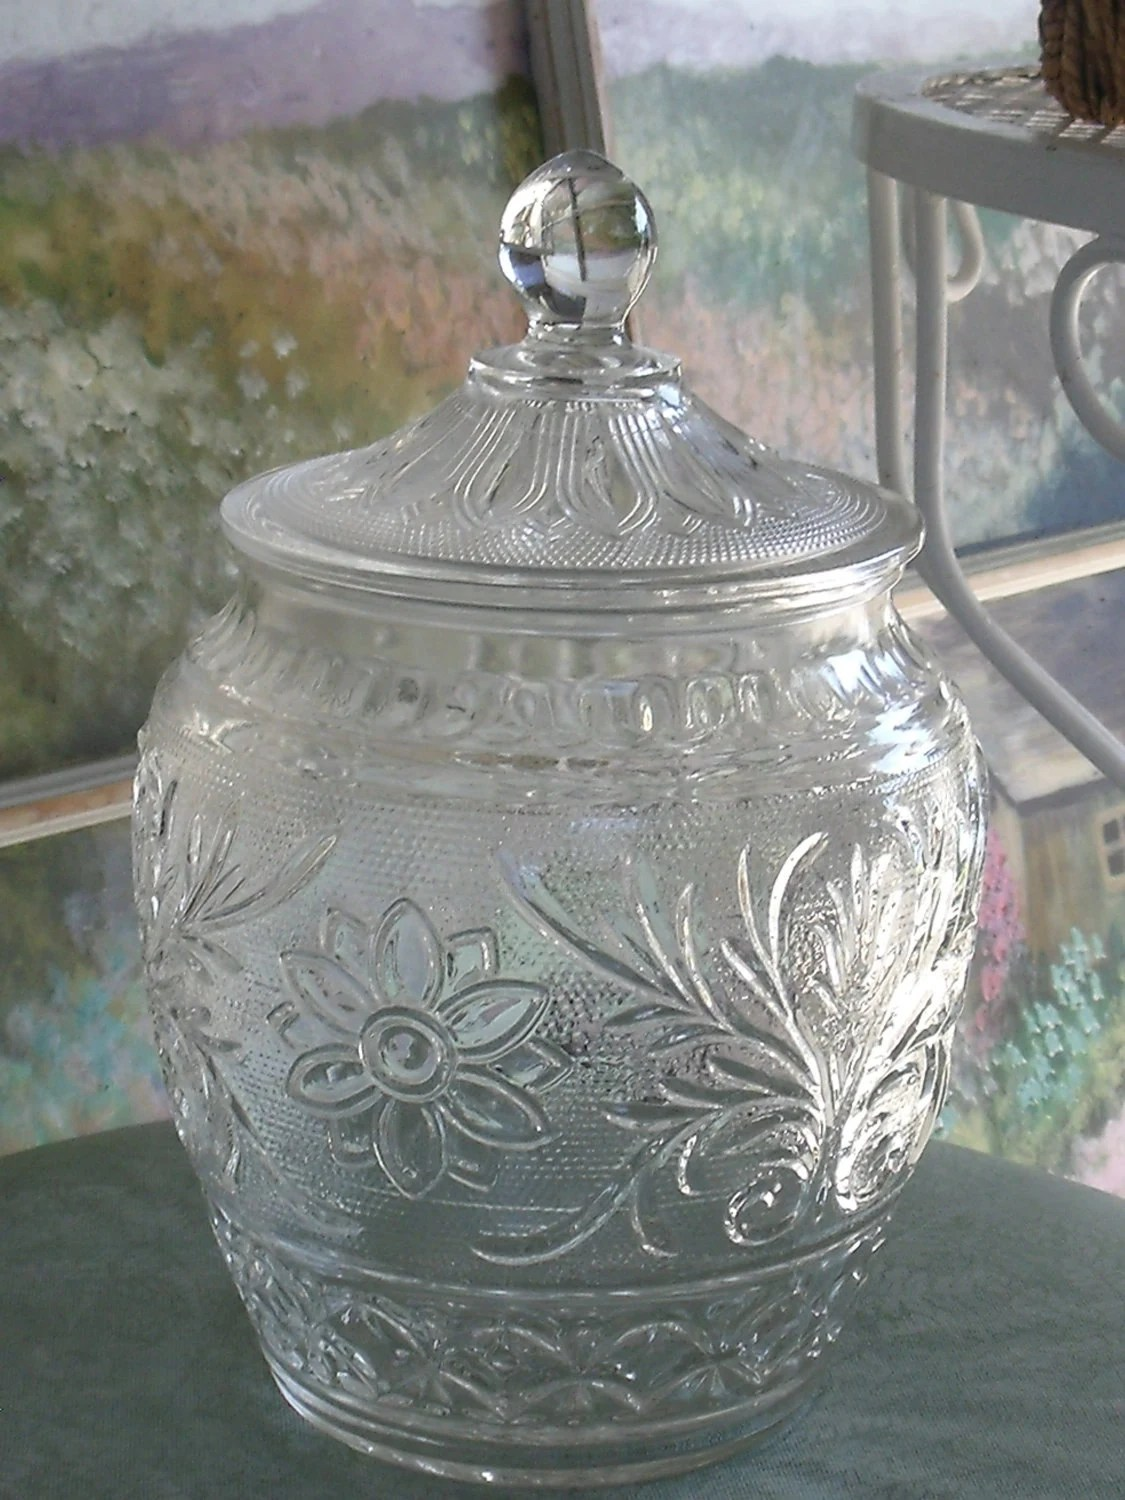 Keksdose Glas Clear Depression Style Glass Cookie Jar With Lid Anchor